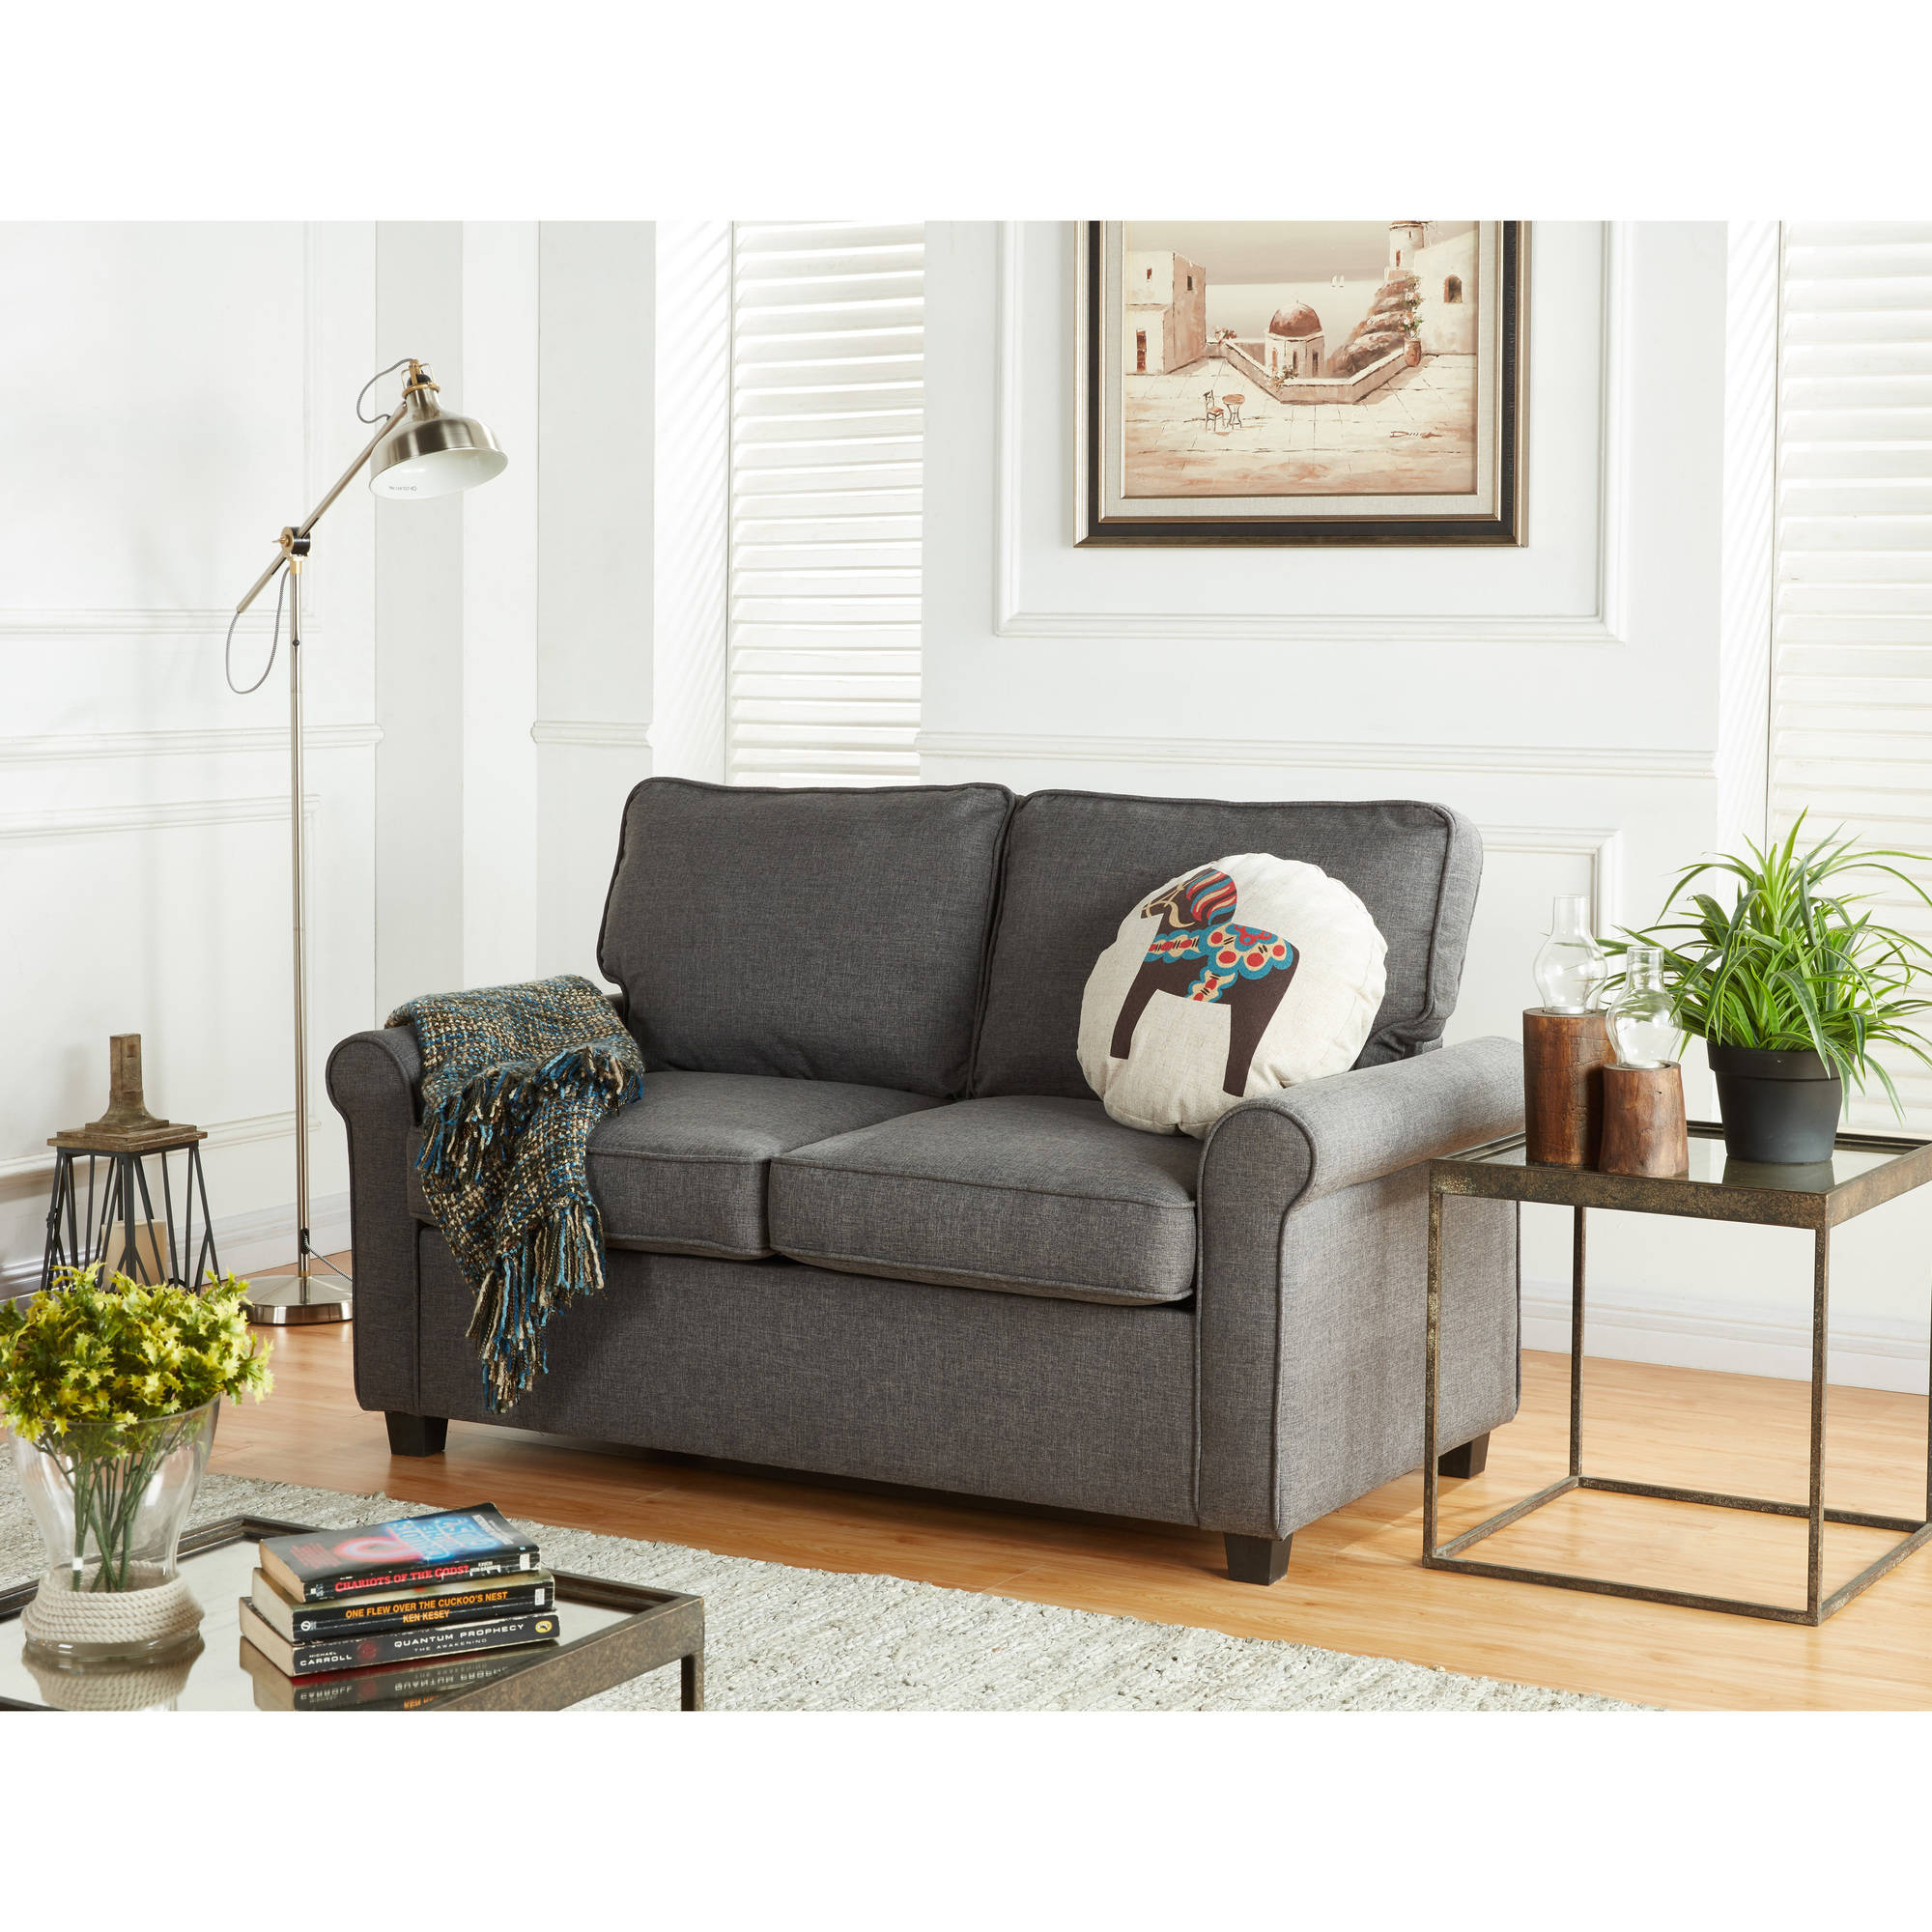 Sensational Mainstays 57 Loveseat Sleeper With Memory Foam Mattress Grey Beutiful Home Inspiration Xortanetmahrainfo